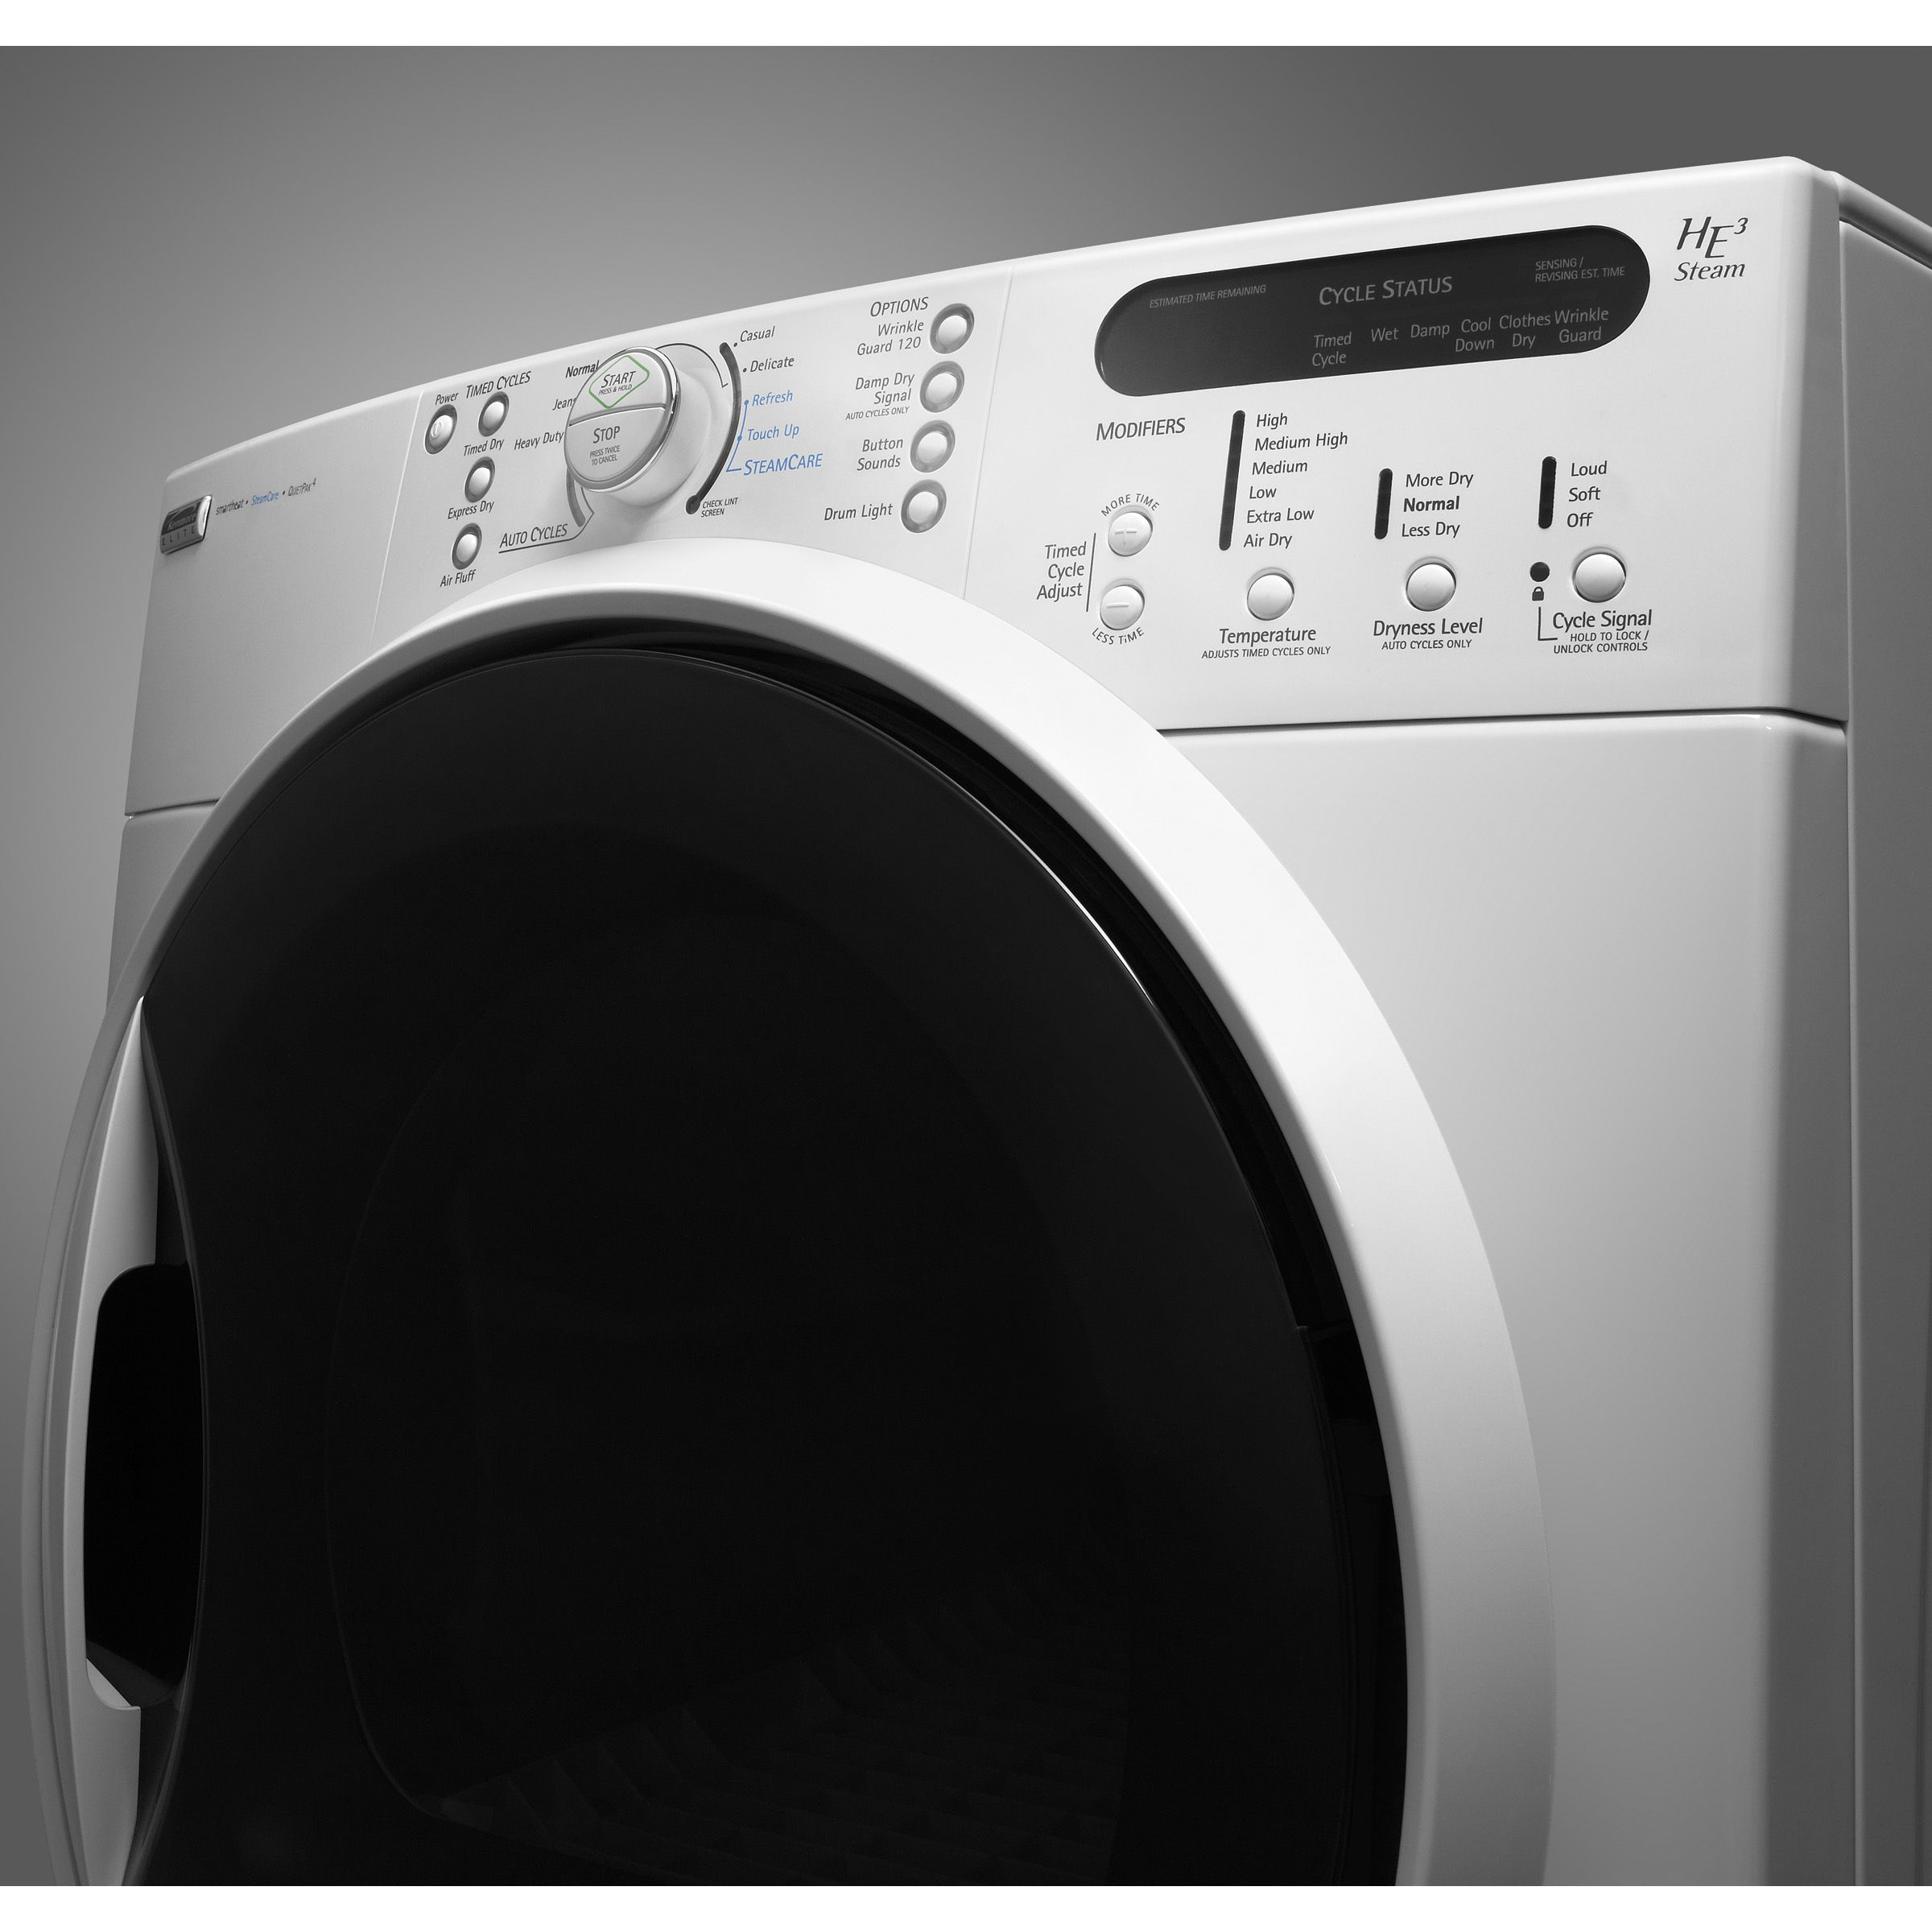 Kenmore Elite HE3 Steam™ 7.2 cu. ft. Super Capacity Electric Dryer